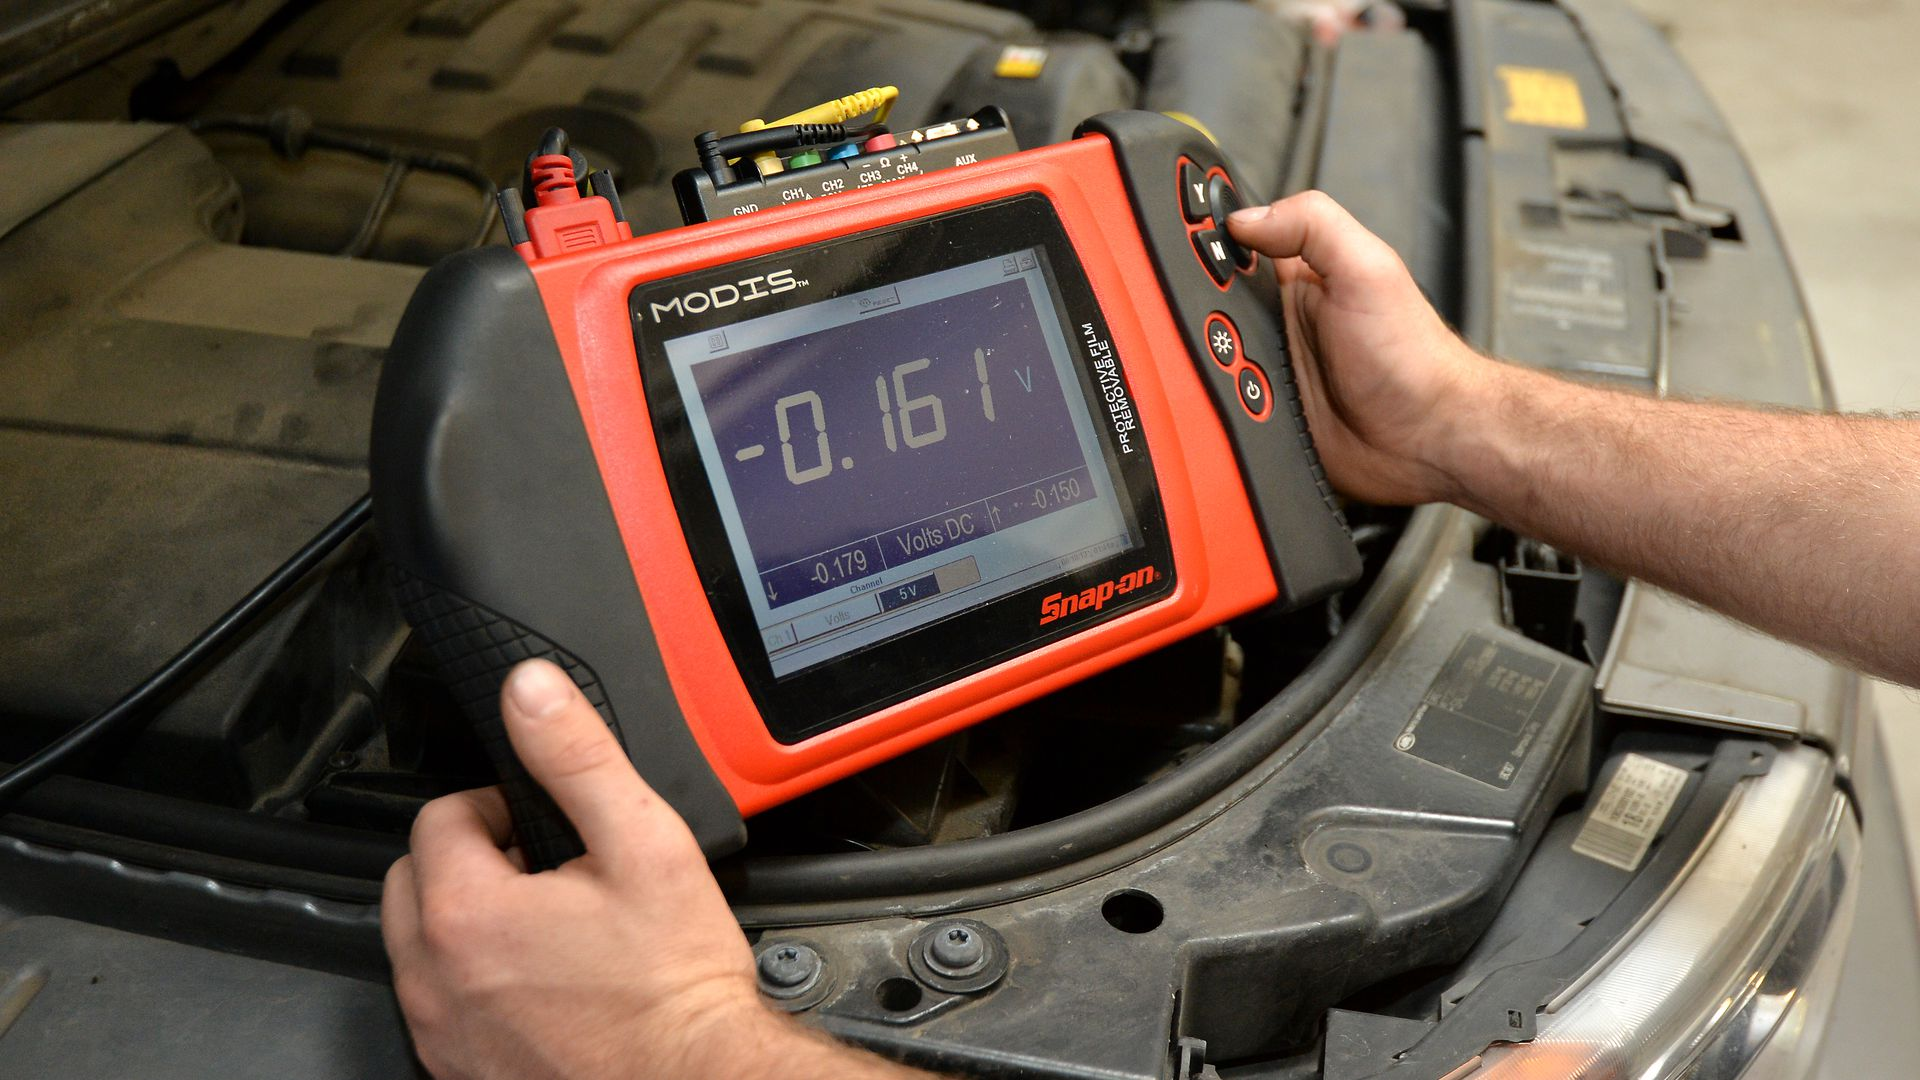 a mechanic holds a diagnostic device with display screen above open car hood and engine block